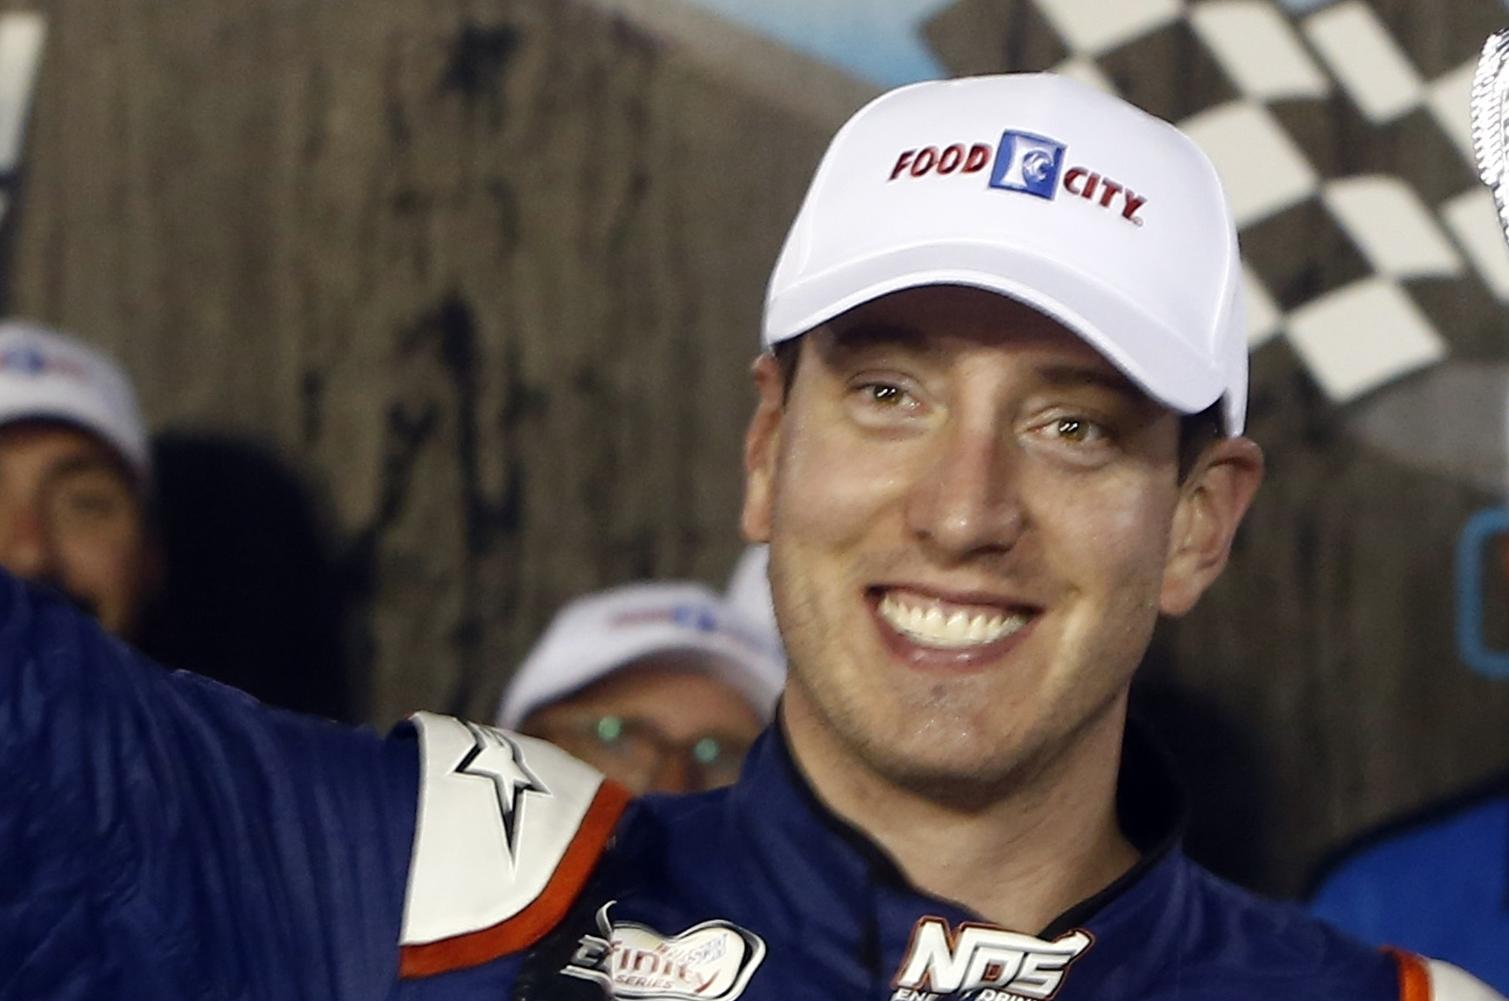 Thomas Toyota Joliet >> Kyle Busch wins playoff pole at Chicagoland Speedway | The Spokesman-Review